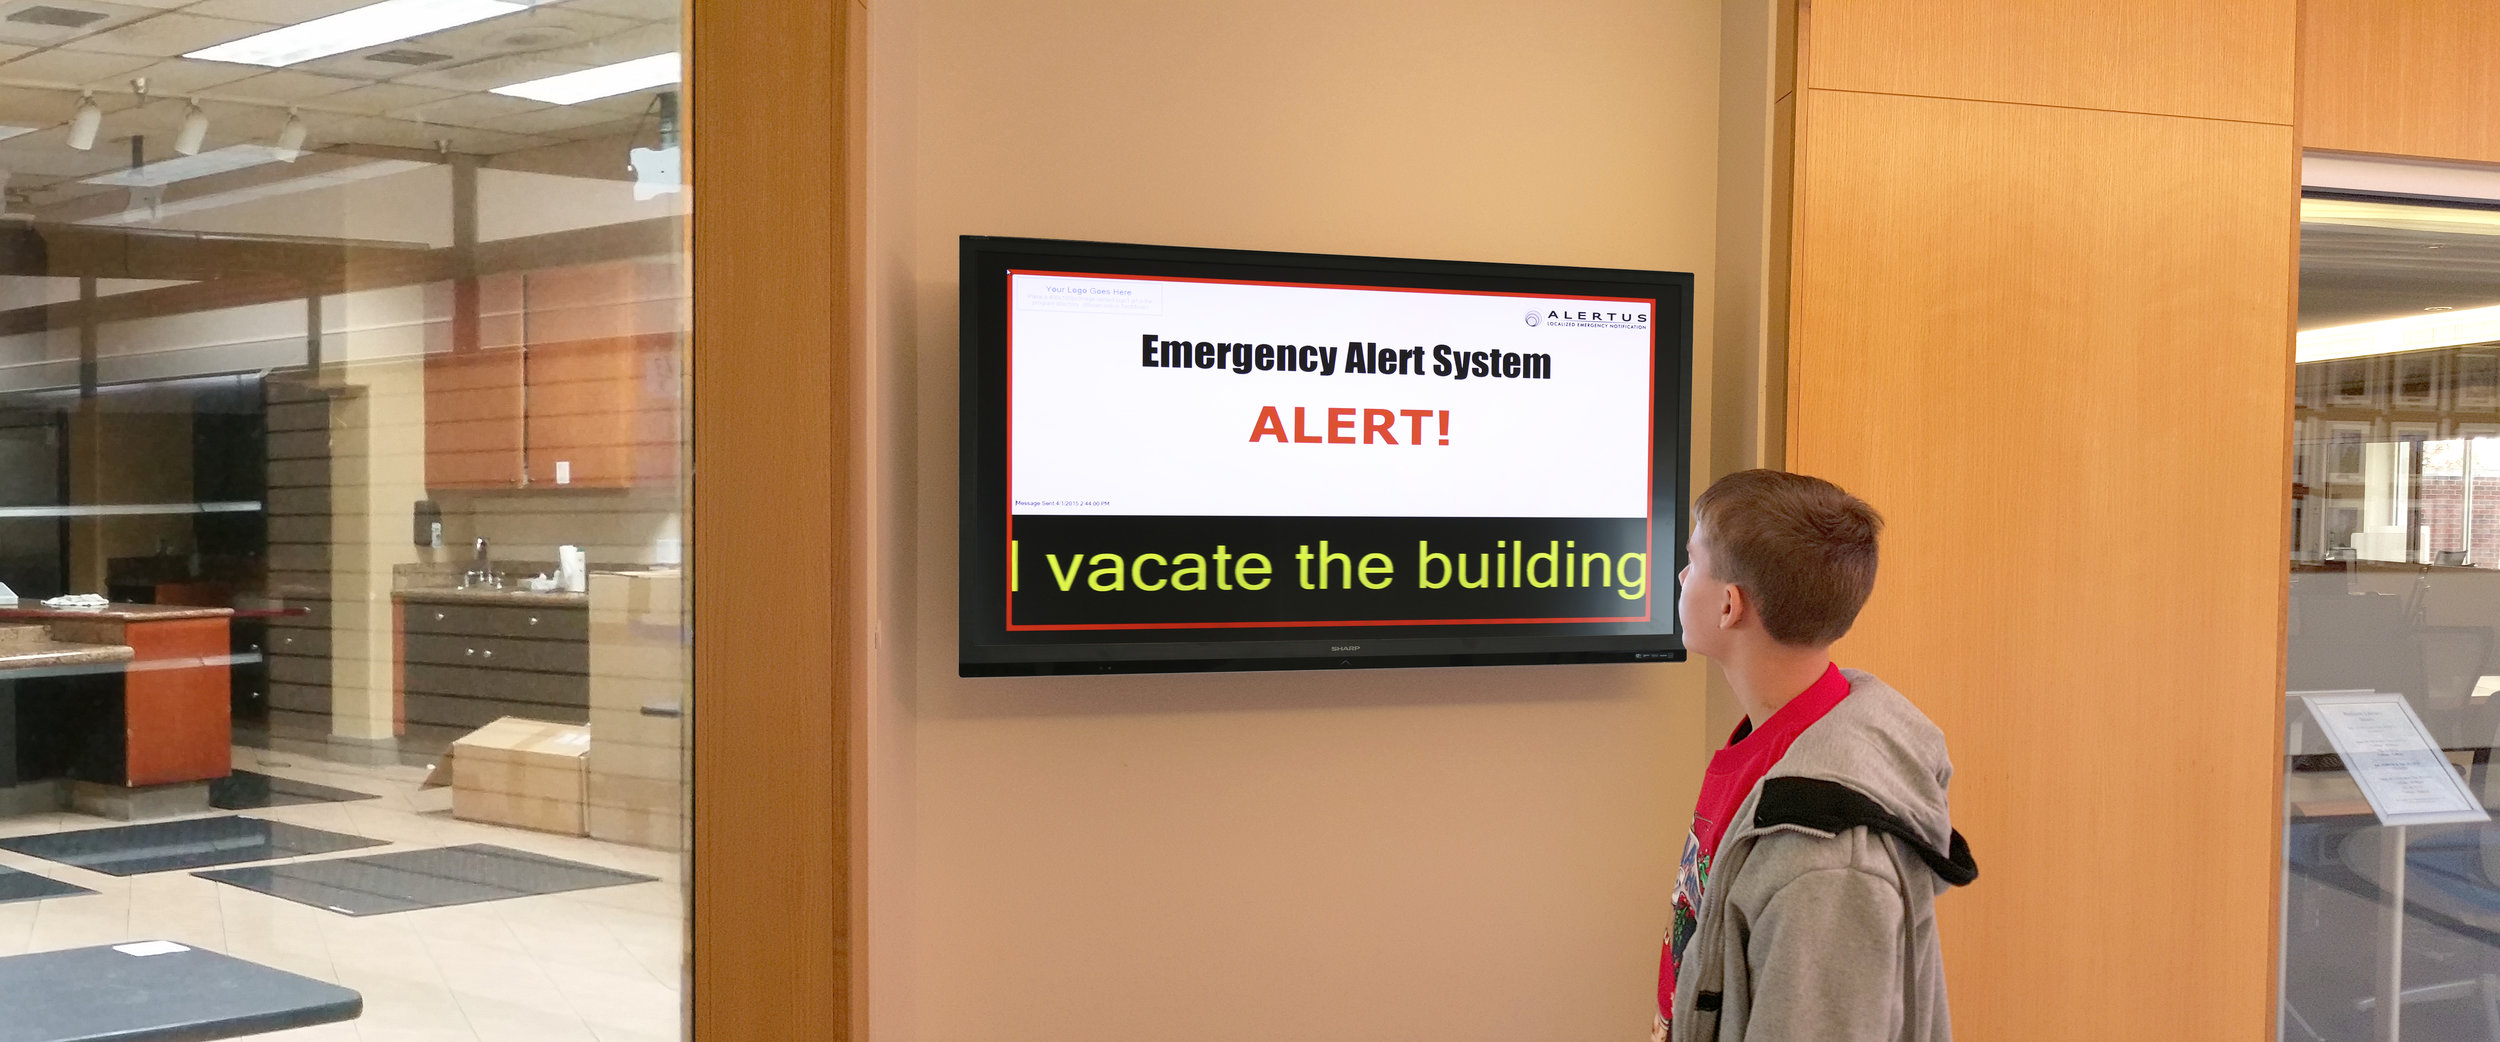 Deaf and Hard of Hearing Emergency Notification